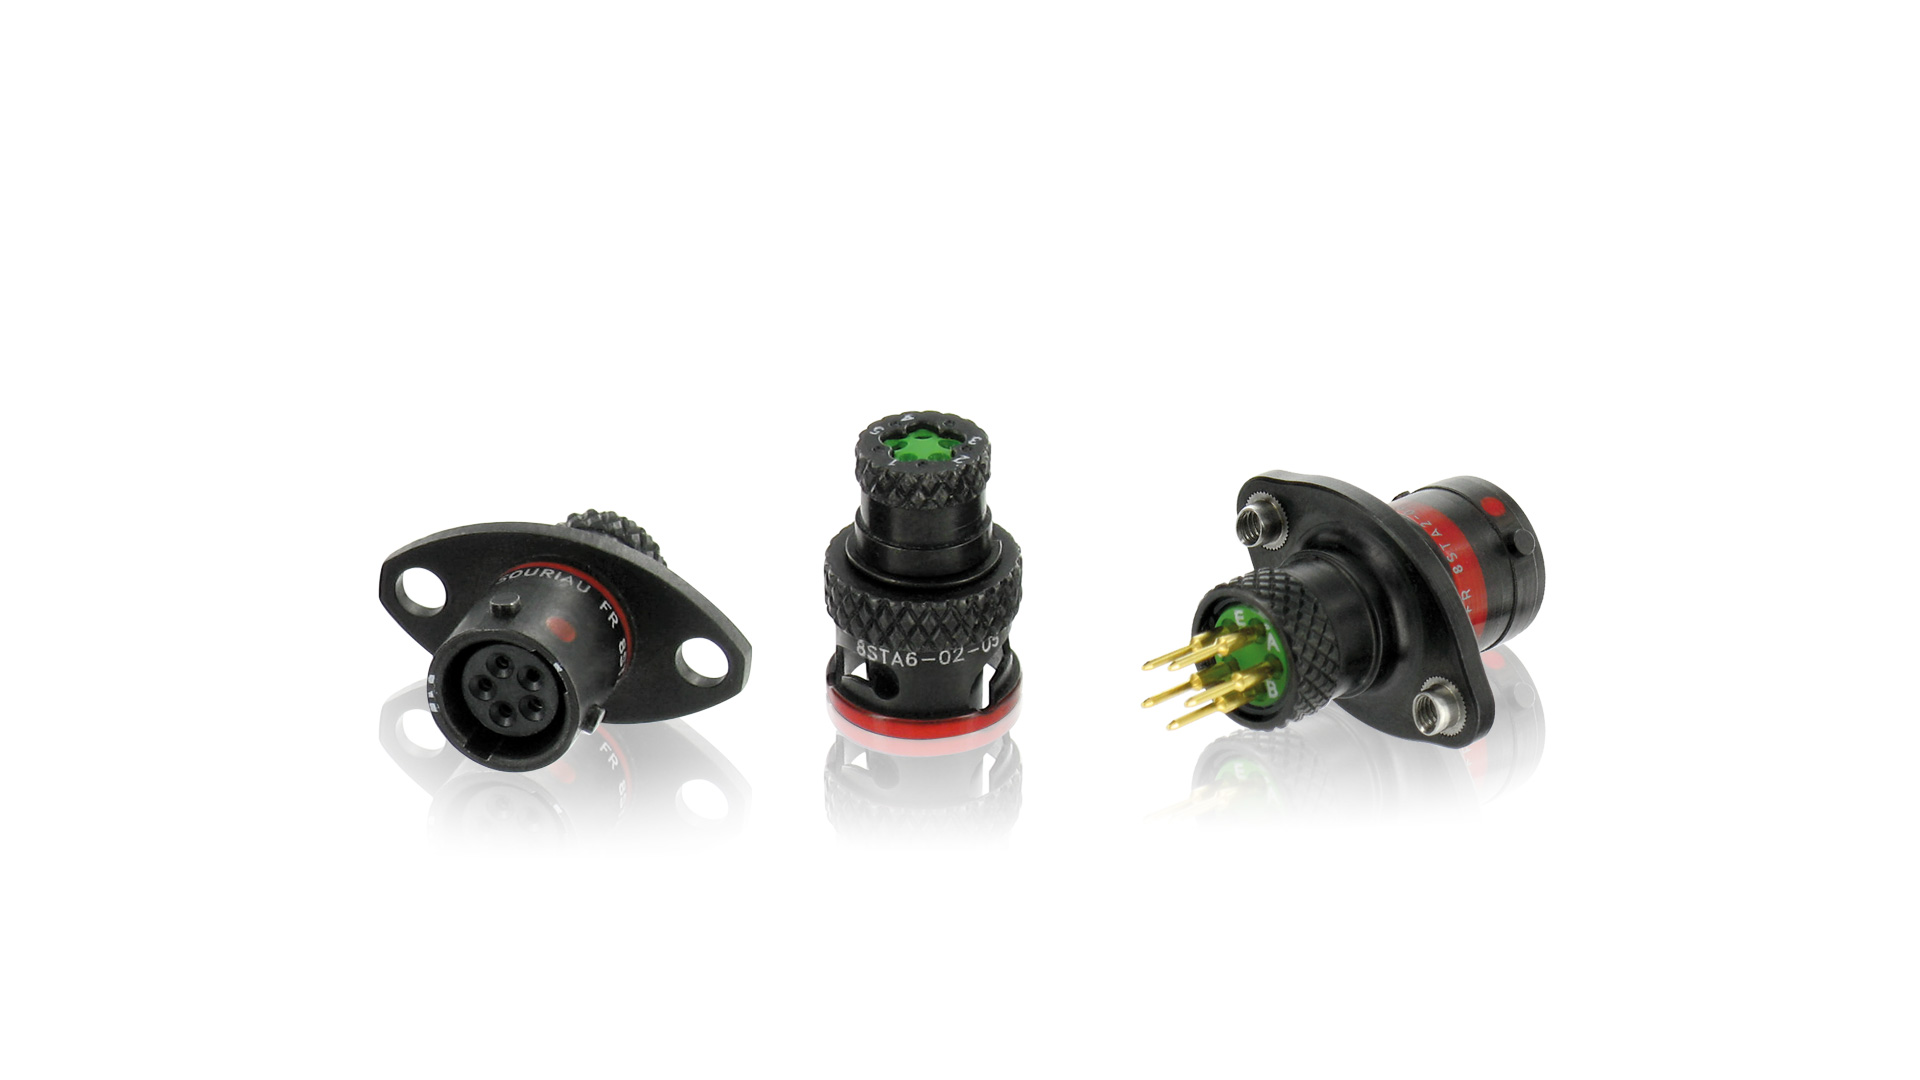 8STA Series - Miniature Connectors for Motorsports